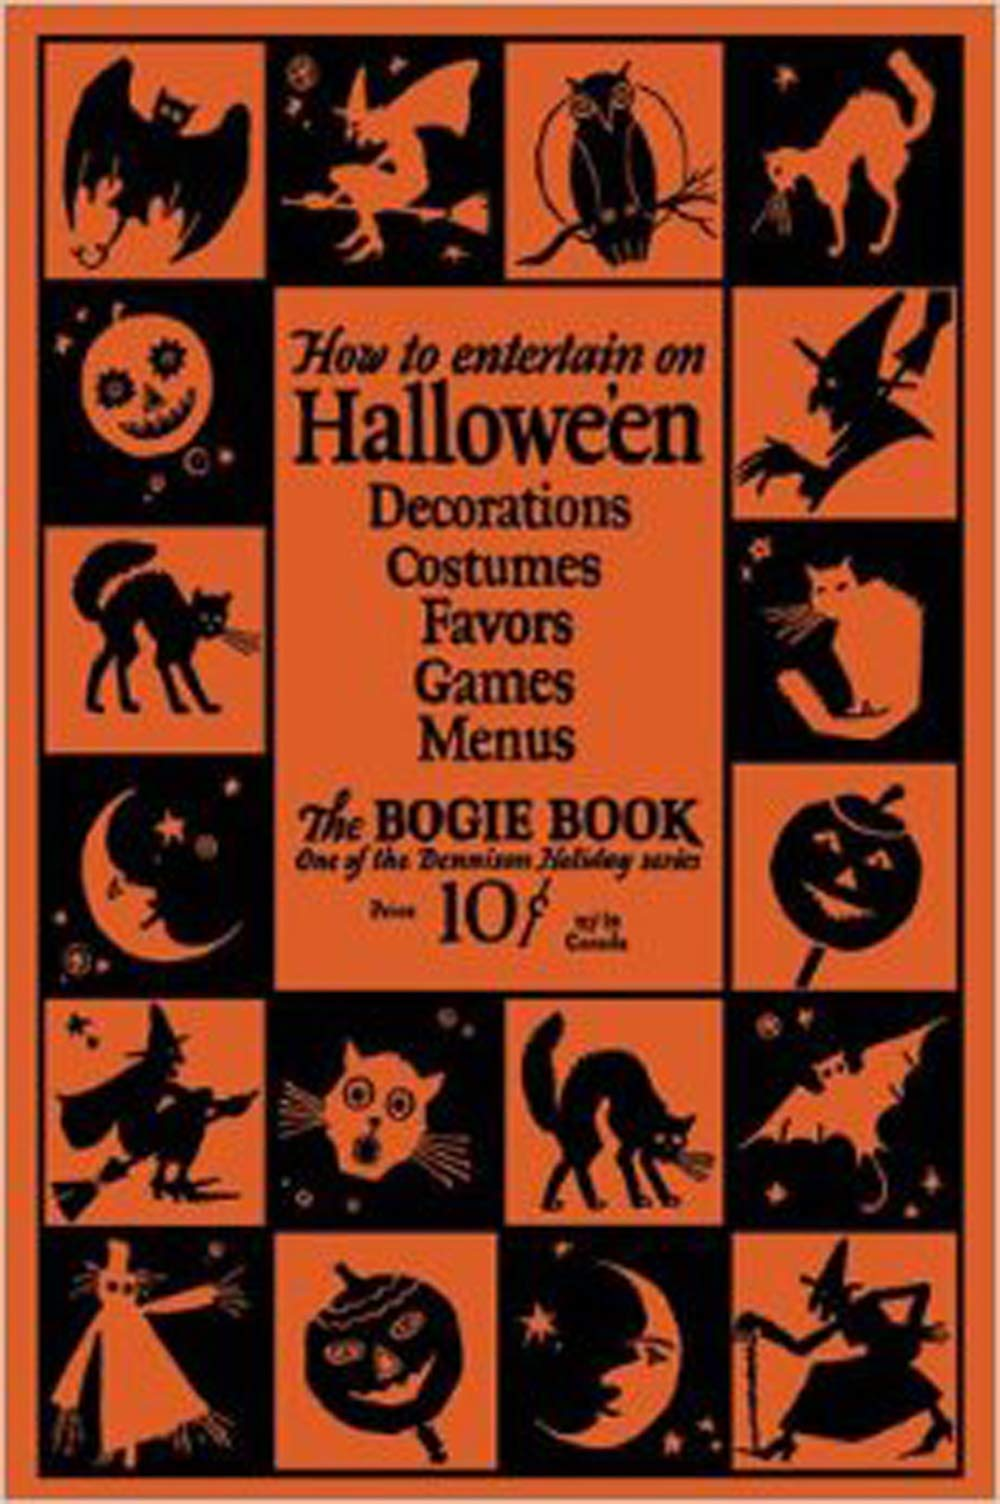 Dennison's Bogie Book -- A 1926 Guide for Vintage Decorating and  Entertaining at Halloween (14th Edition): Dennison Manufacturing Co.:  9781936049615: Amazon.com: Books